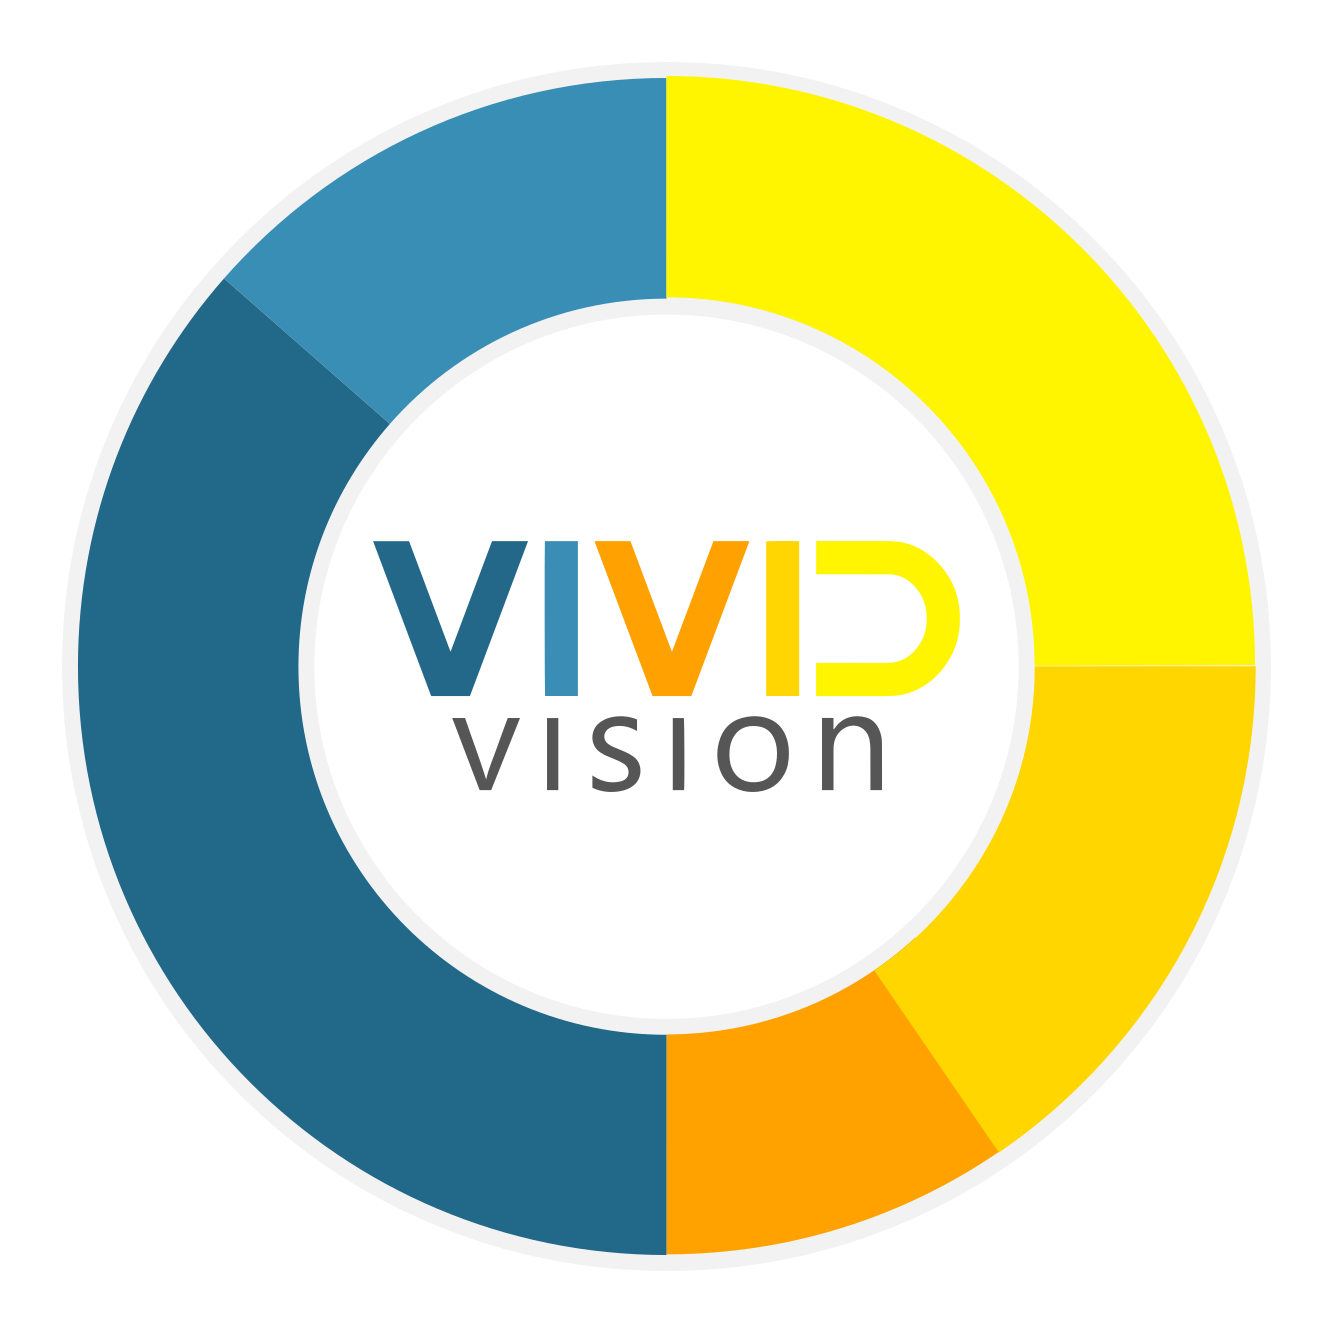 Vivid-Vision-Logo-With-Circle.png